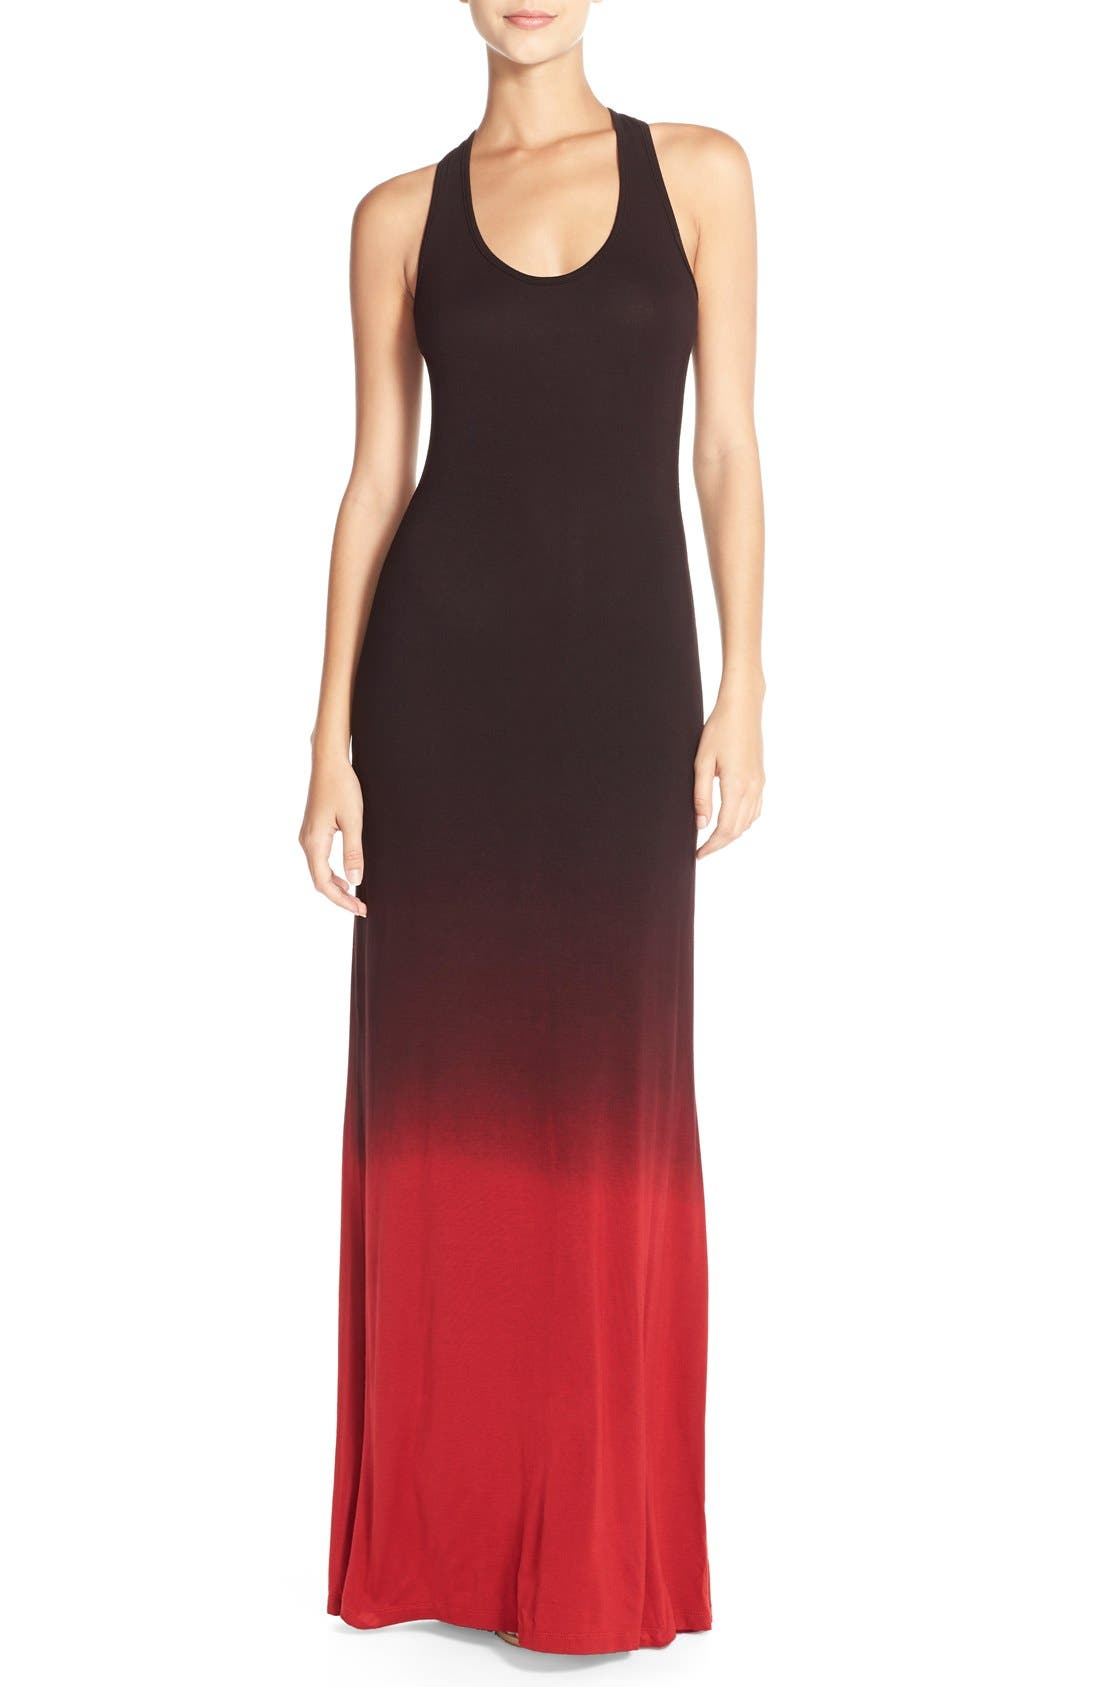 Racerback Maxi Dress,                             Main thumbnail 1, color,                             Black/ Red Ombre